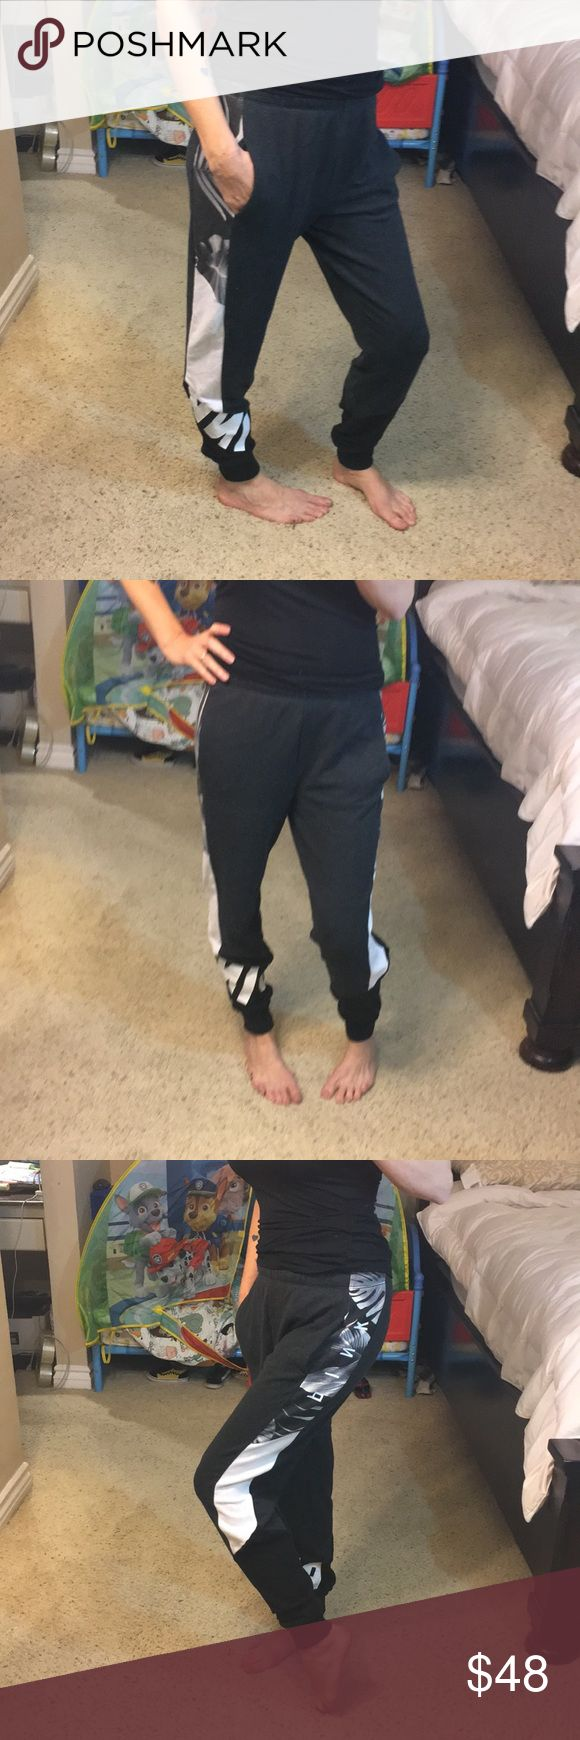 """🎀LIKE NEW VS PINK campus sweatpants 🎀 Super cute like new size small worn twice never dried in dryer has pockets and elastic and tie waist True to size inseam is 29"""" tropical print PINK Victoria's Secret Pants Track Pants & Joggers"""